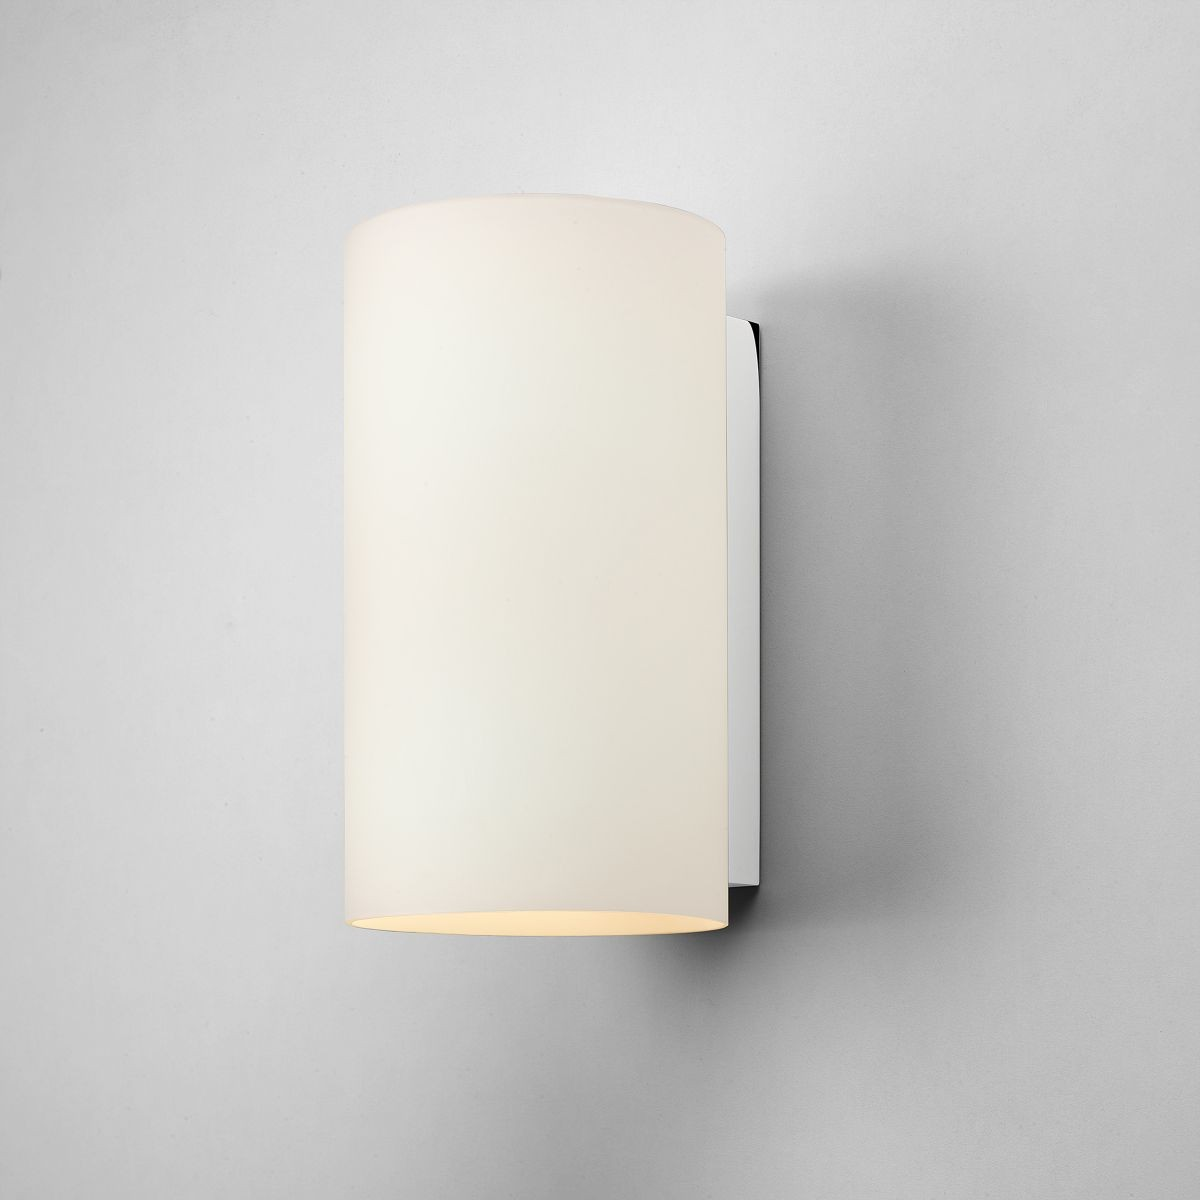 Wall Light Glass Diffuser : Cyl 200 Glass Wall Light in Polished Chrome and White Opal Glass Diffuser AX0883